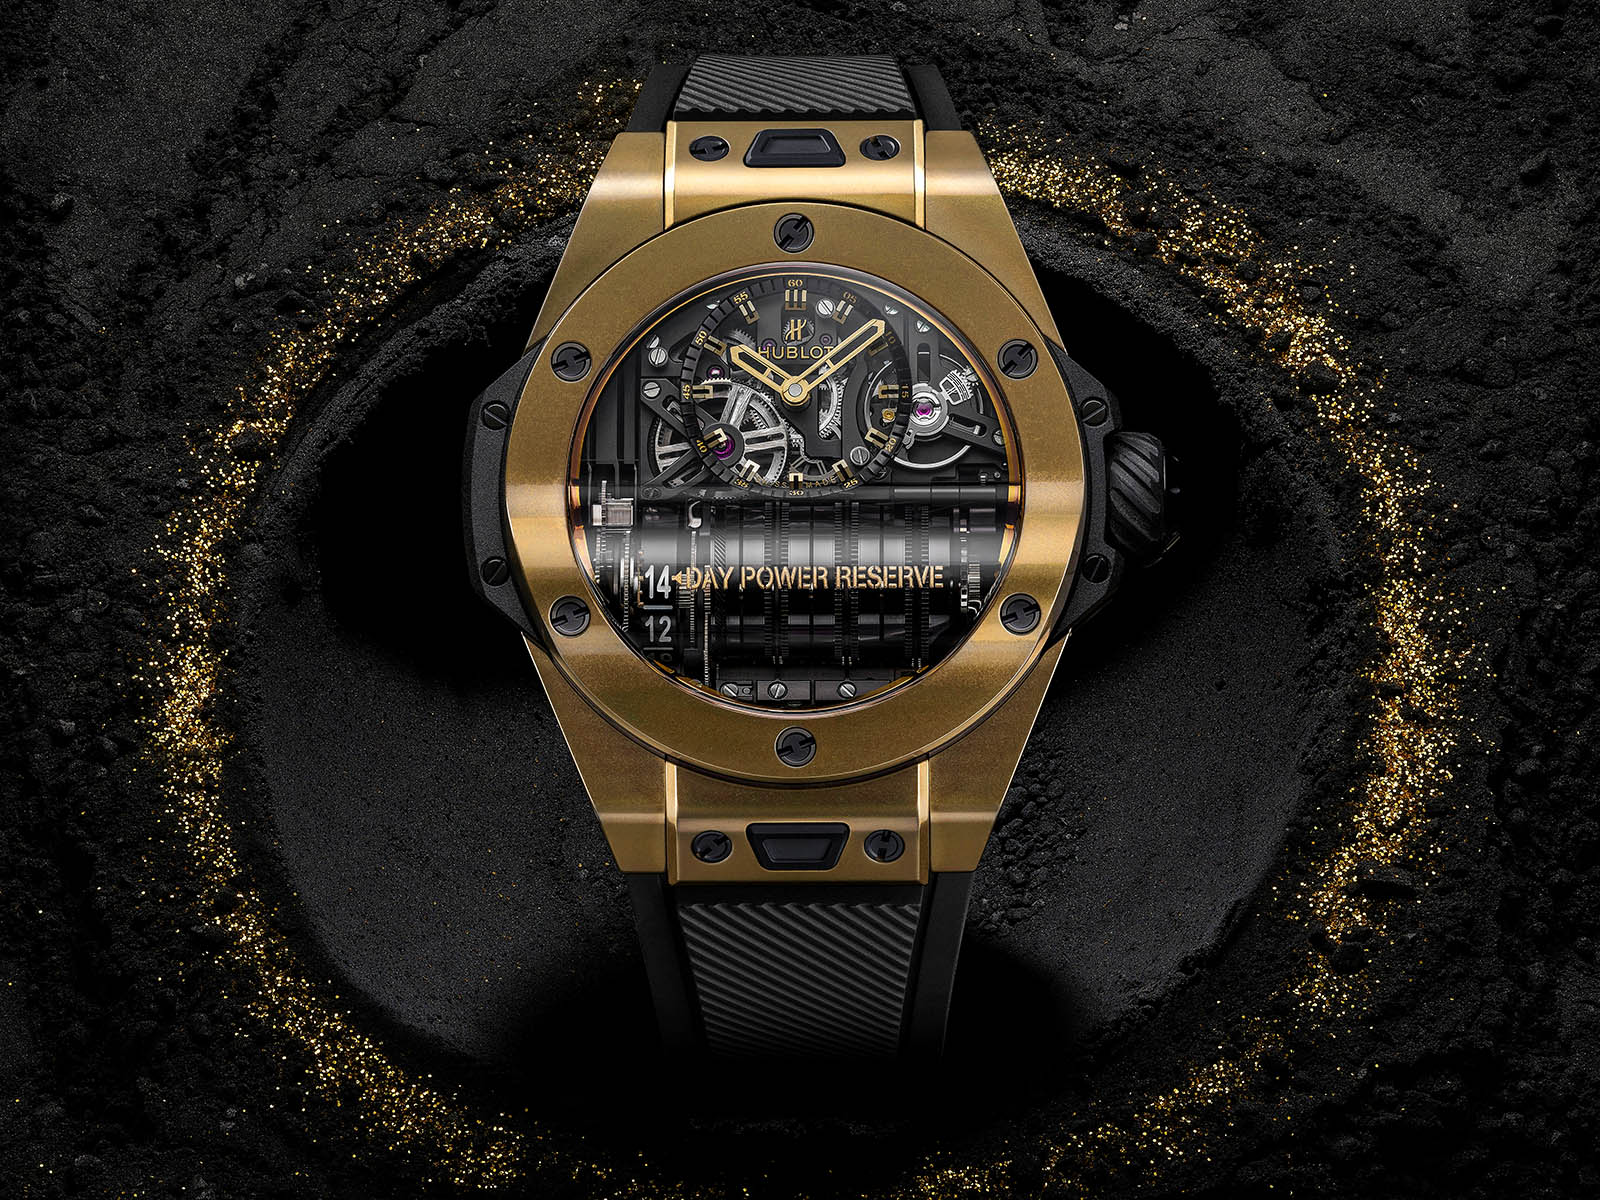 hublot-big-bang-mp-11-magic-gold-blue-sapphire-lvmh-2021-novelties-1.jpg